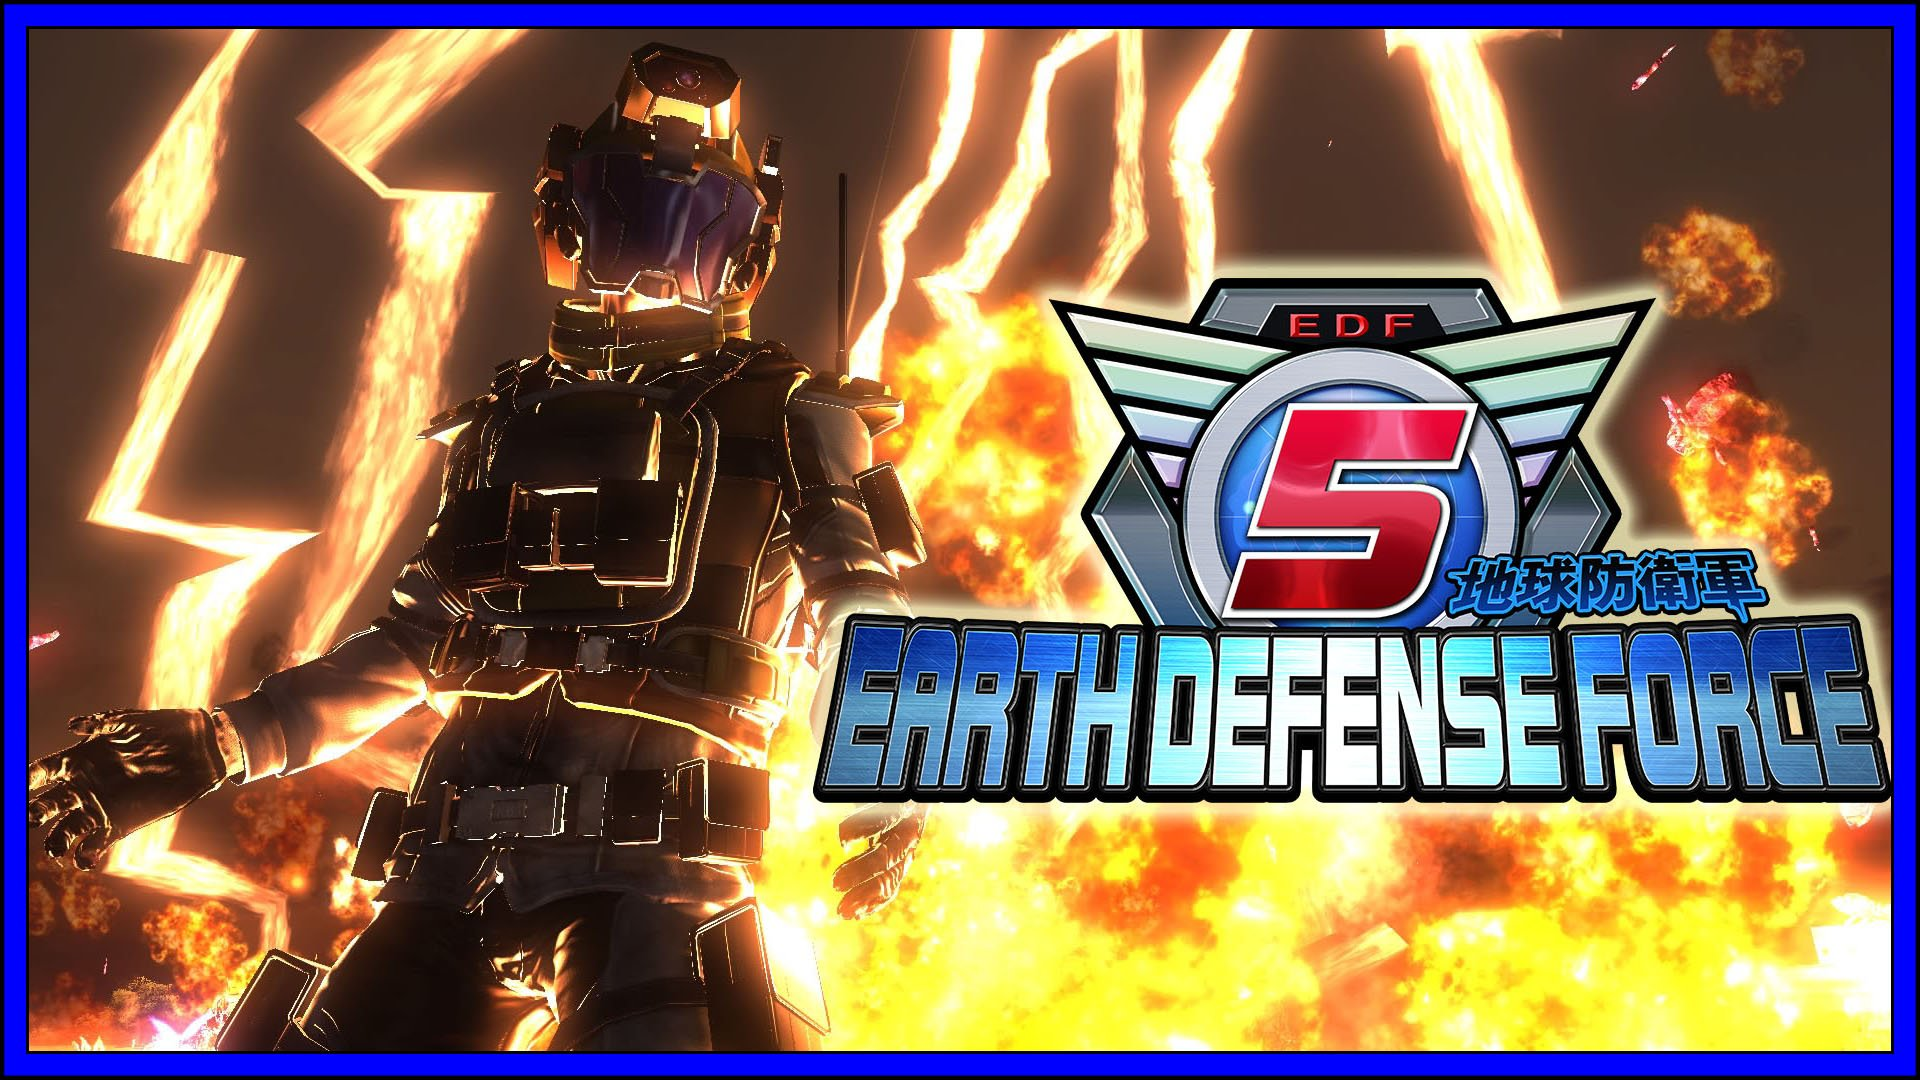 Earth Defense Force 5 Fi3